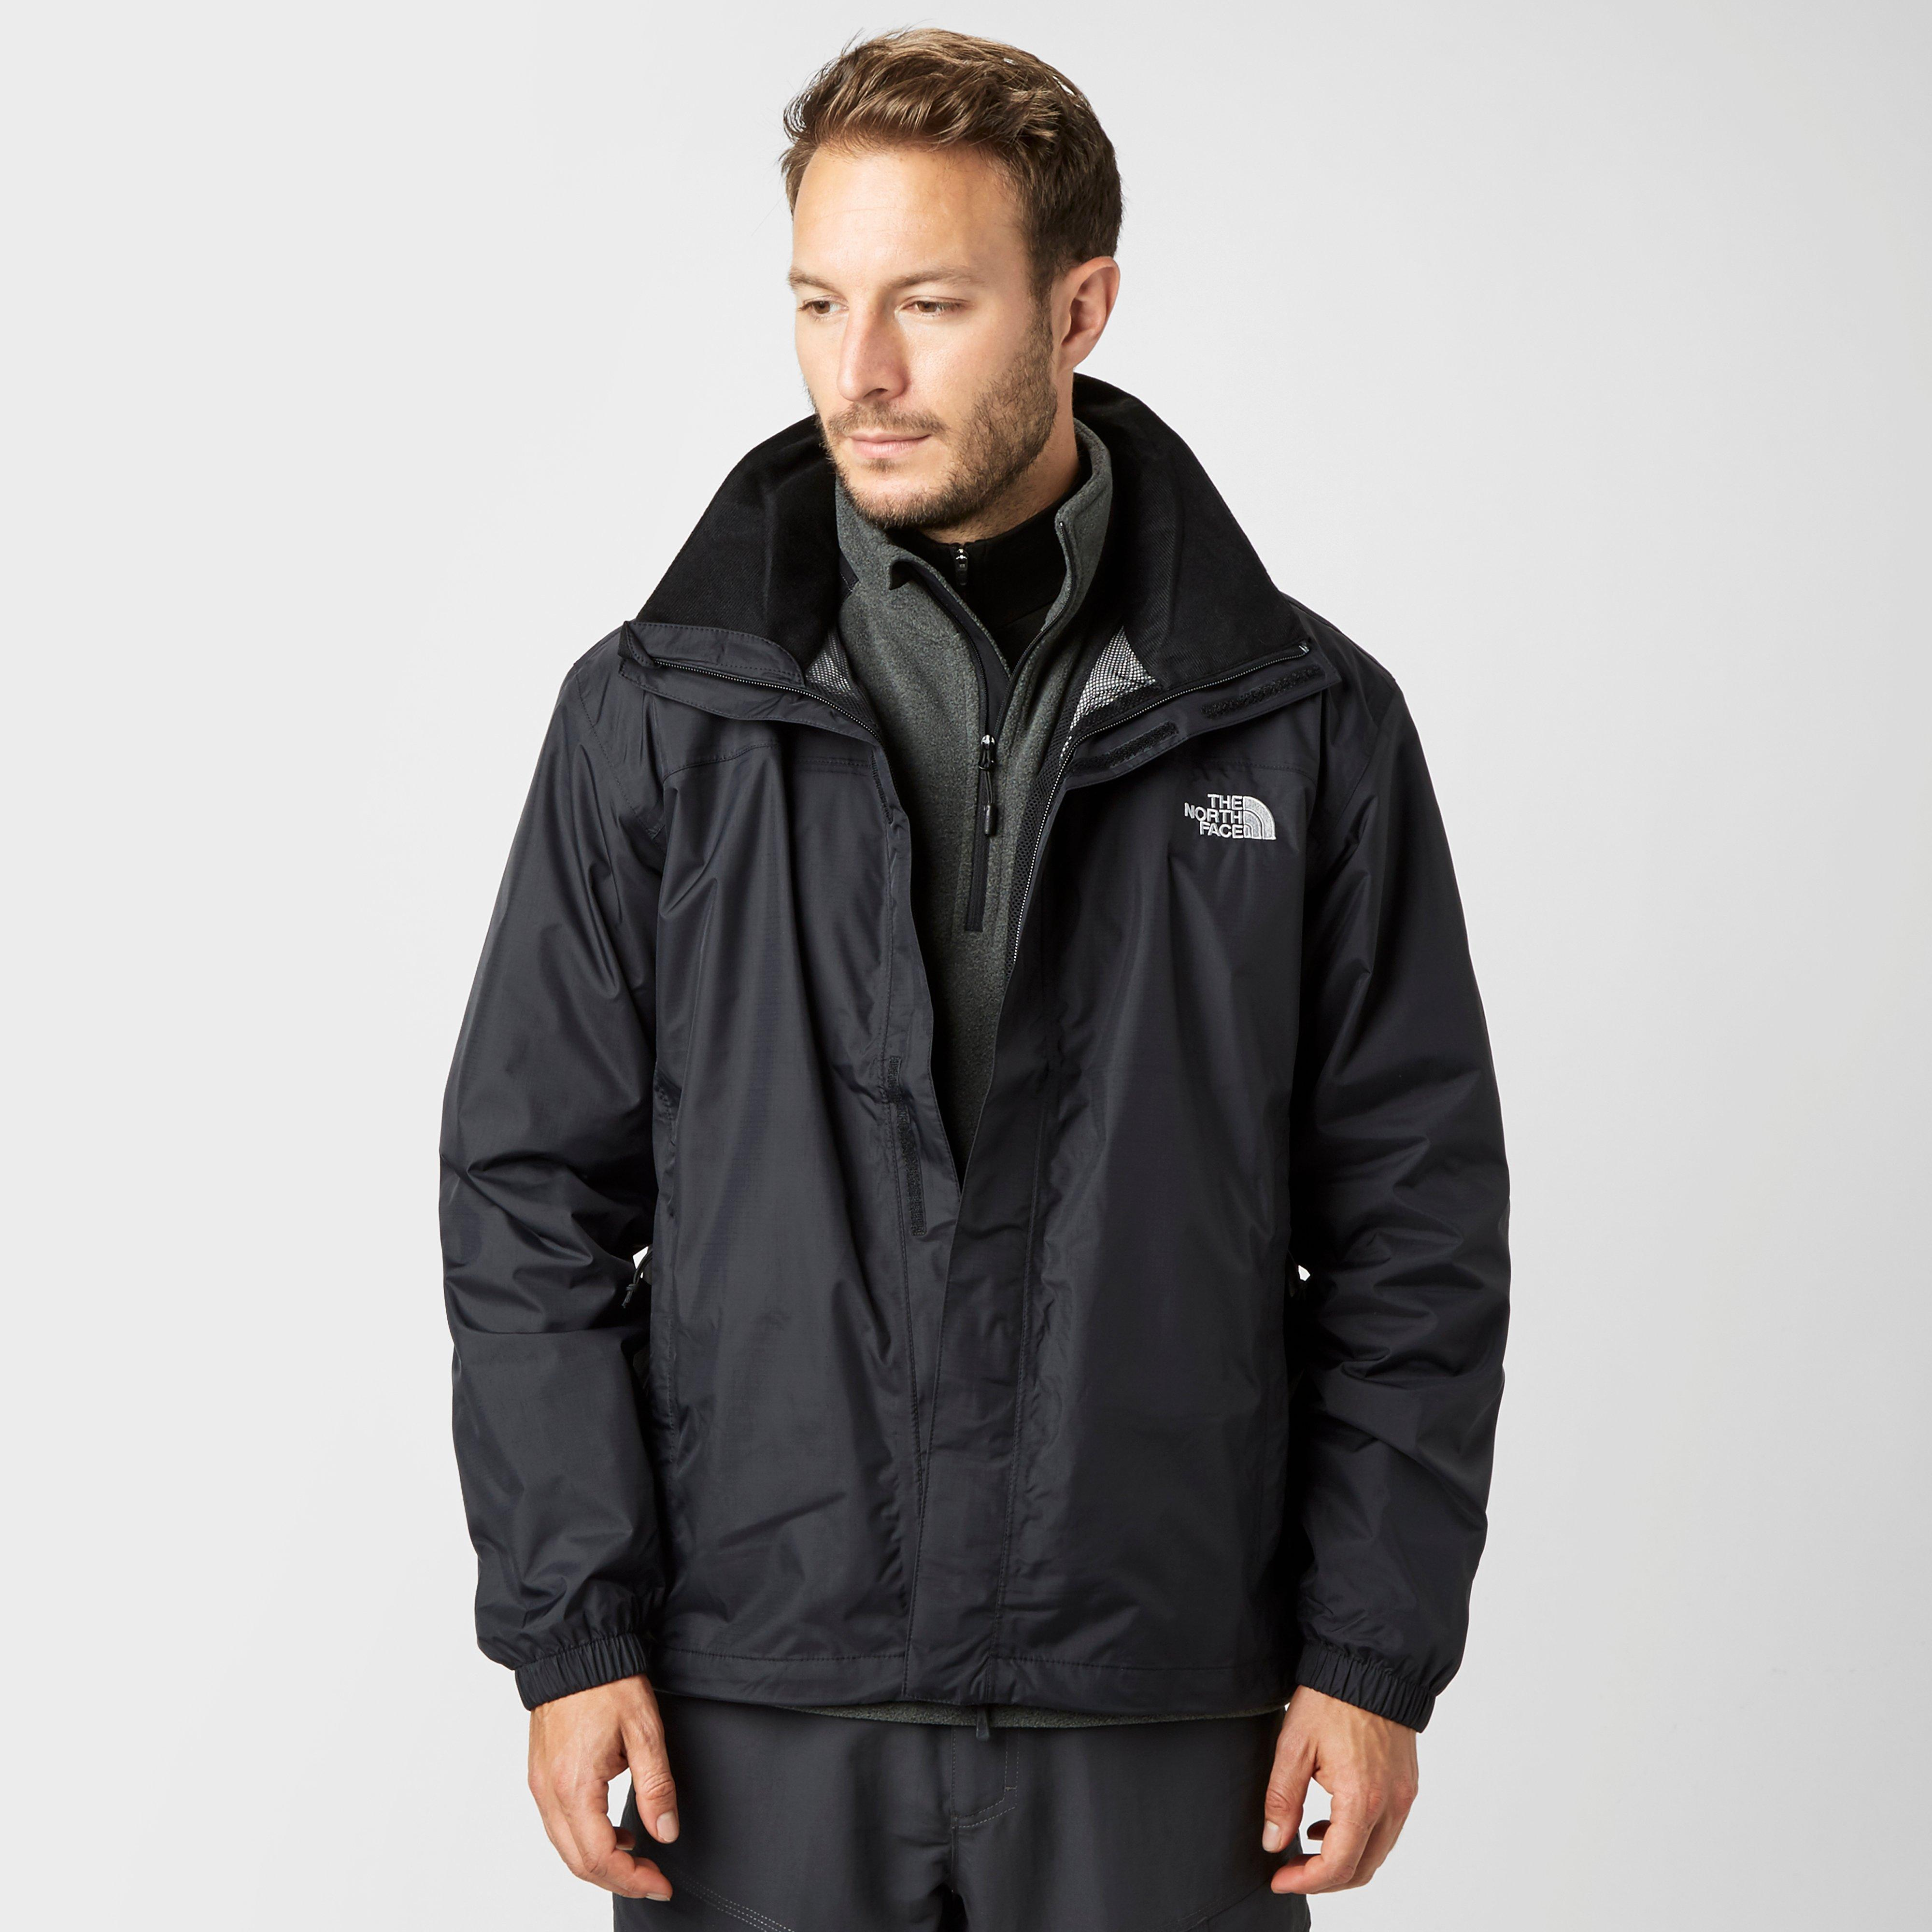 a7a95a725034 ... clearance the north face mens resolve hyvent jacket black black 100.00  bear gyrlls 18ed1 7bc14